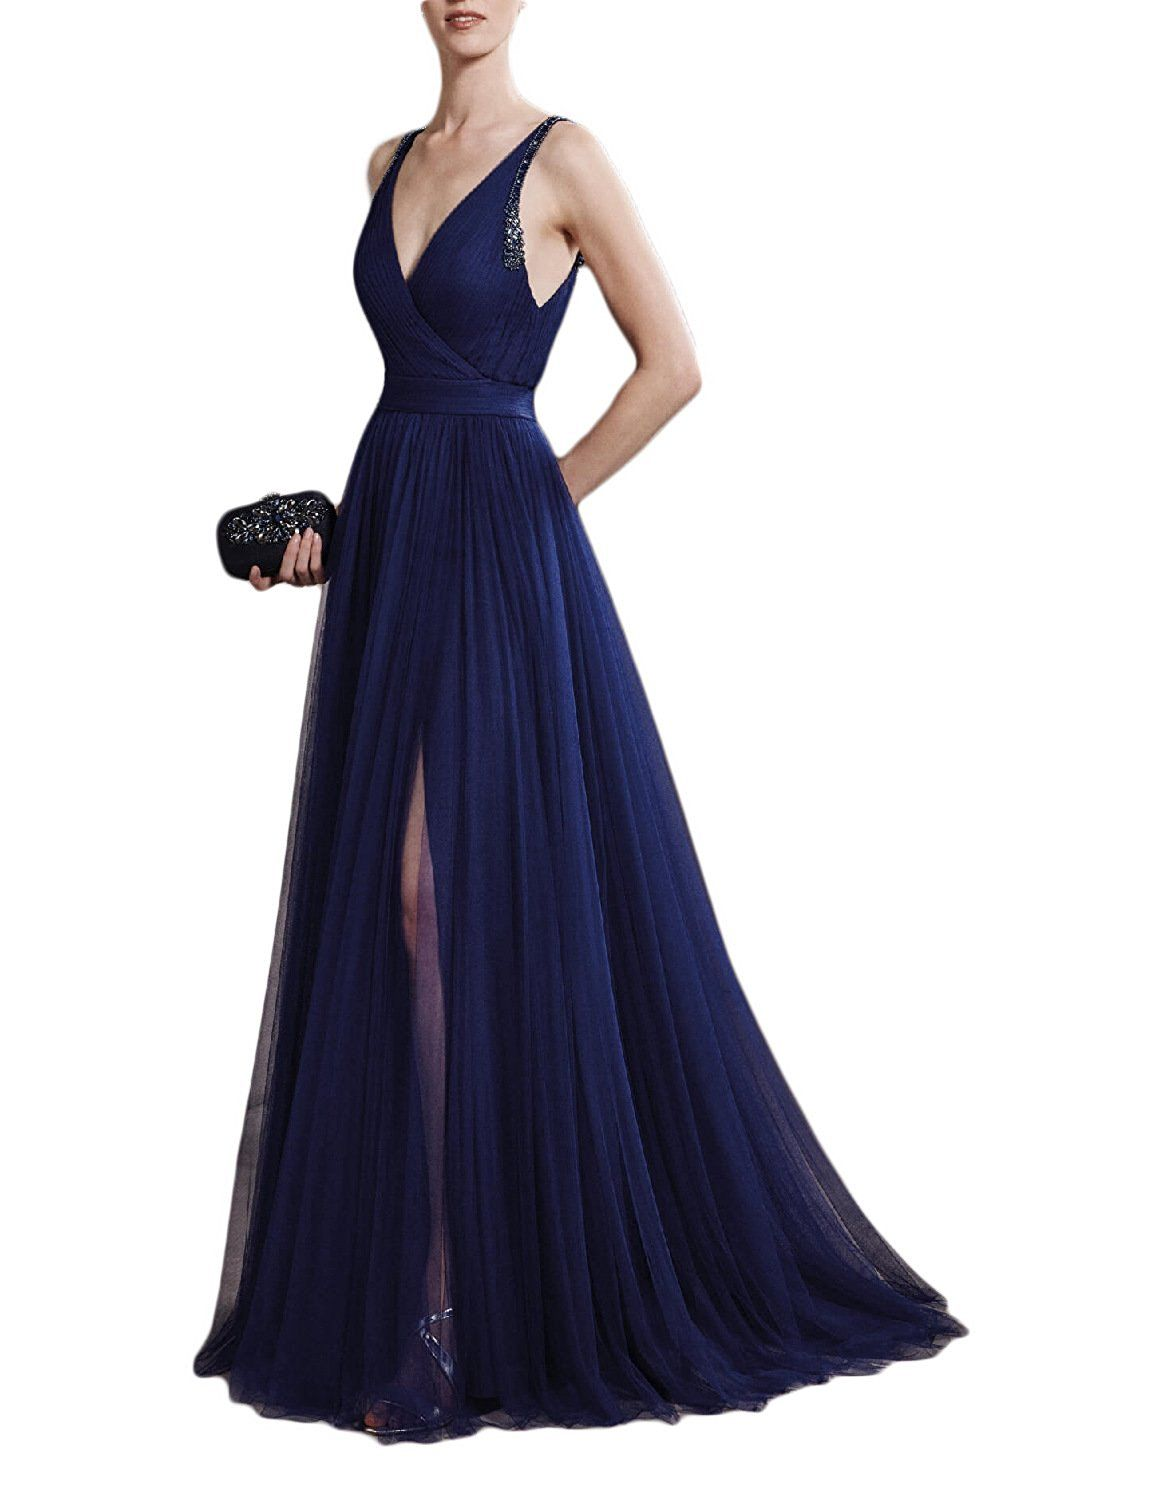 Vanial womenus v neck backless evening dresses prom gowns with high